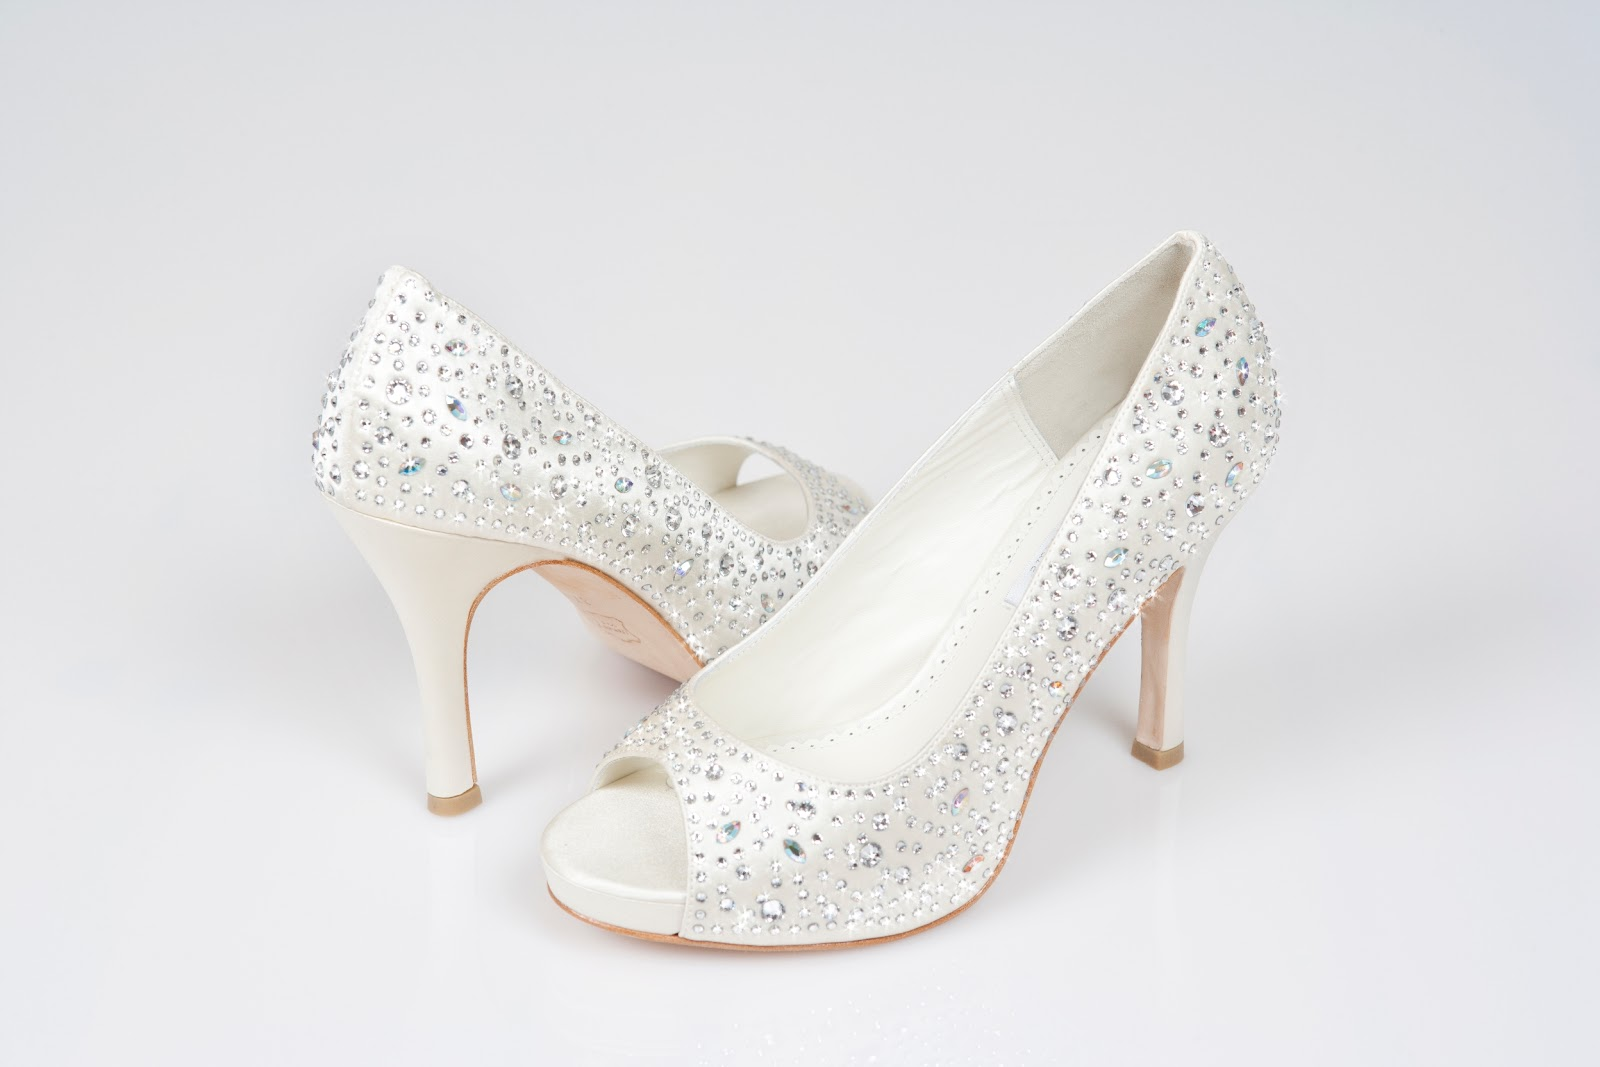 Shoes With Swarovski Crystals Uk